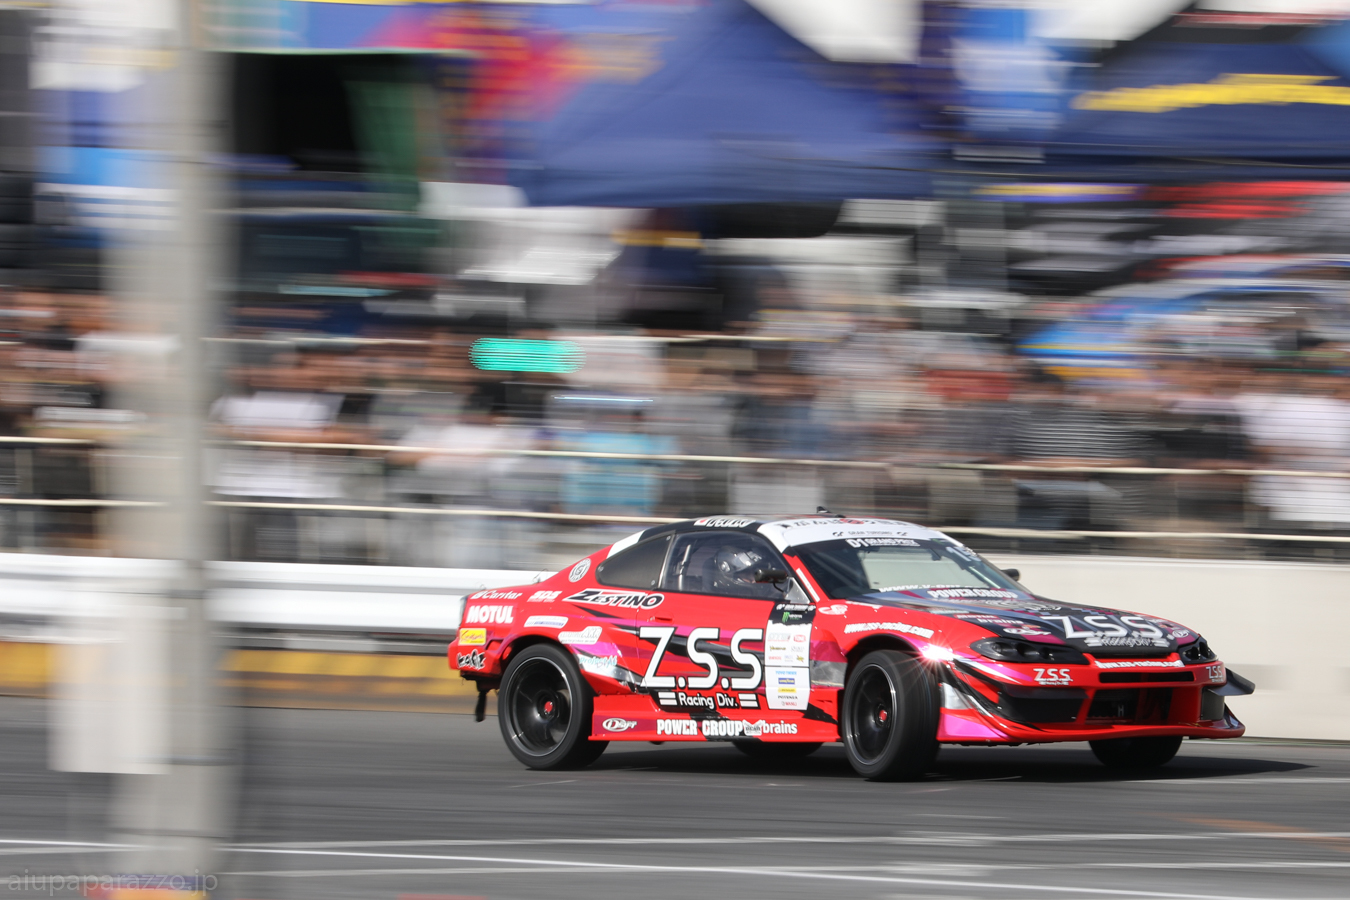 d1gp_tan2016lap3-16.jpg